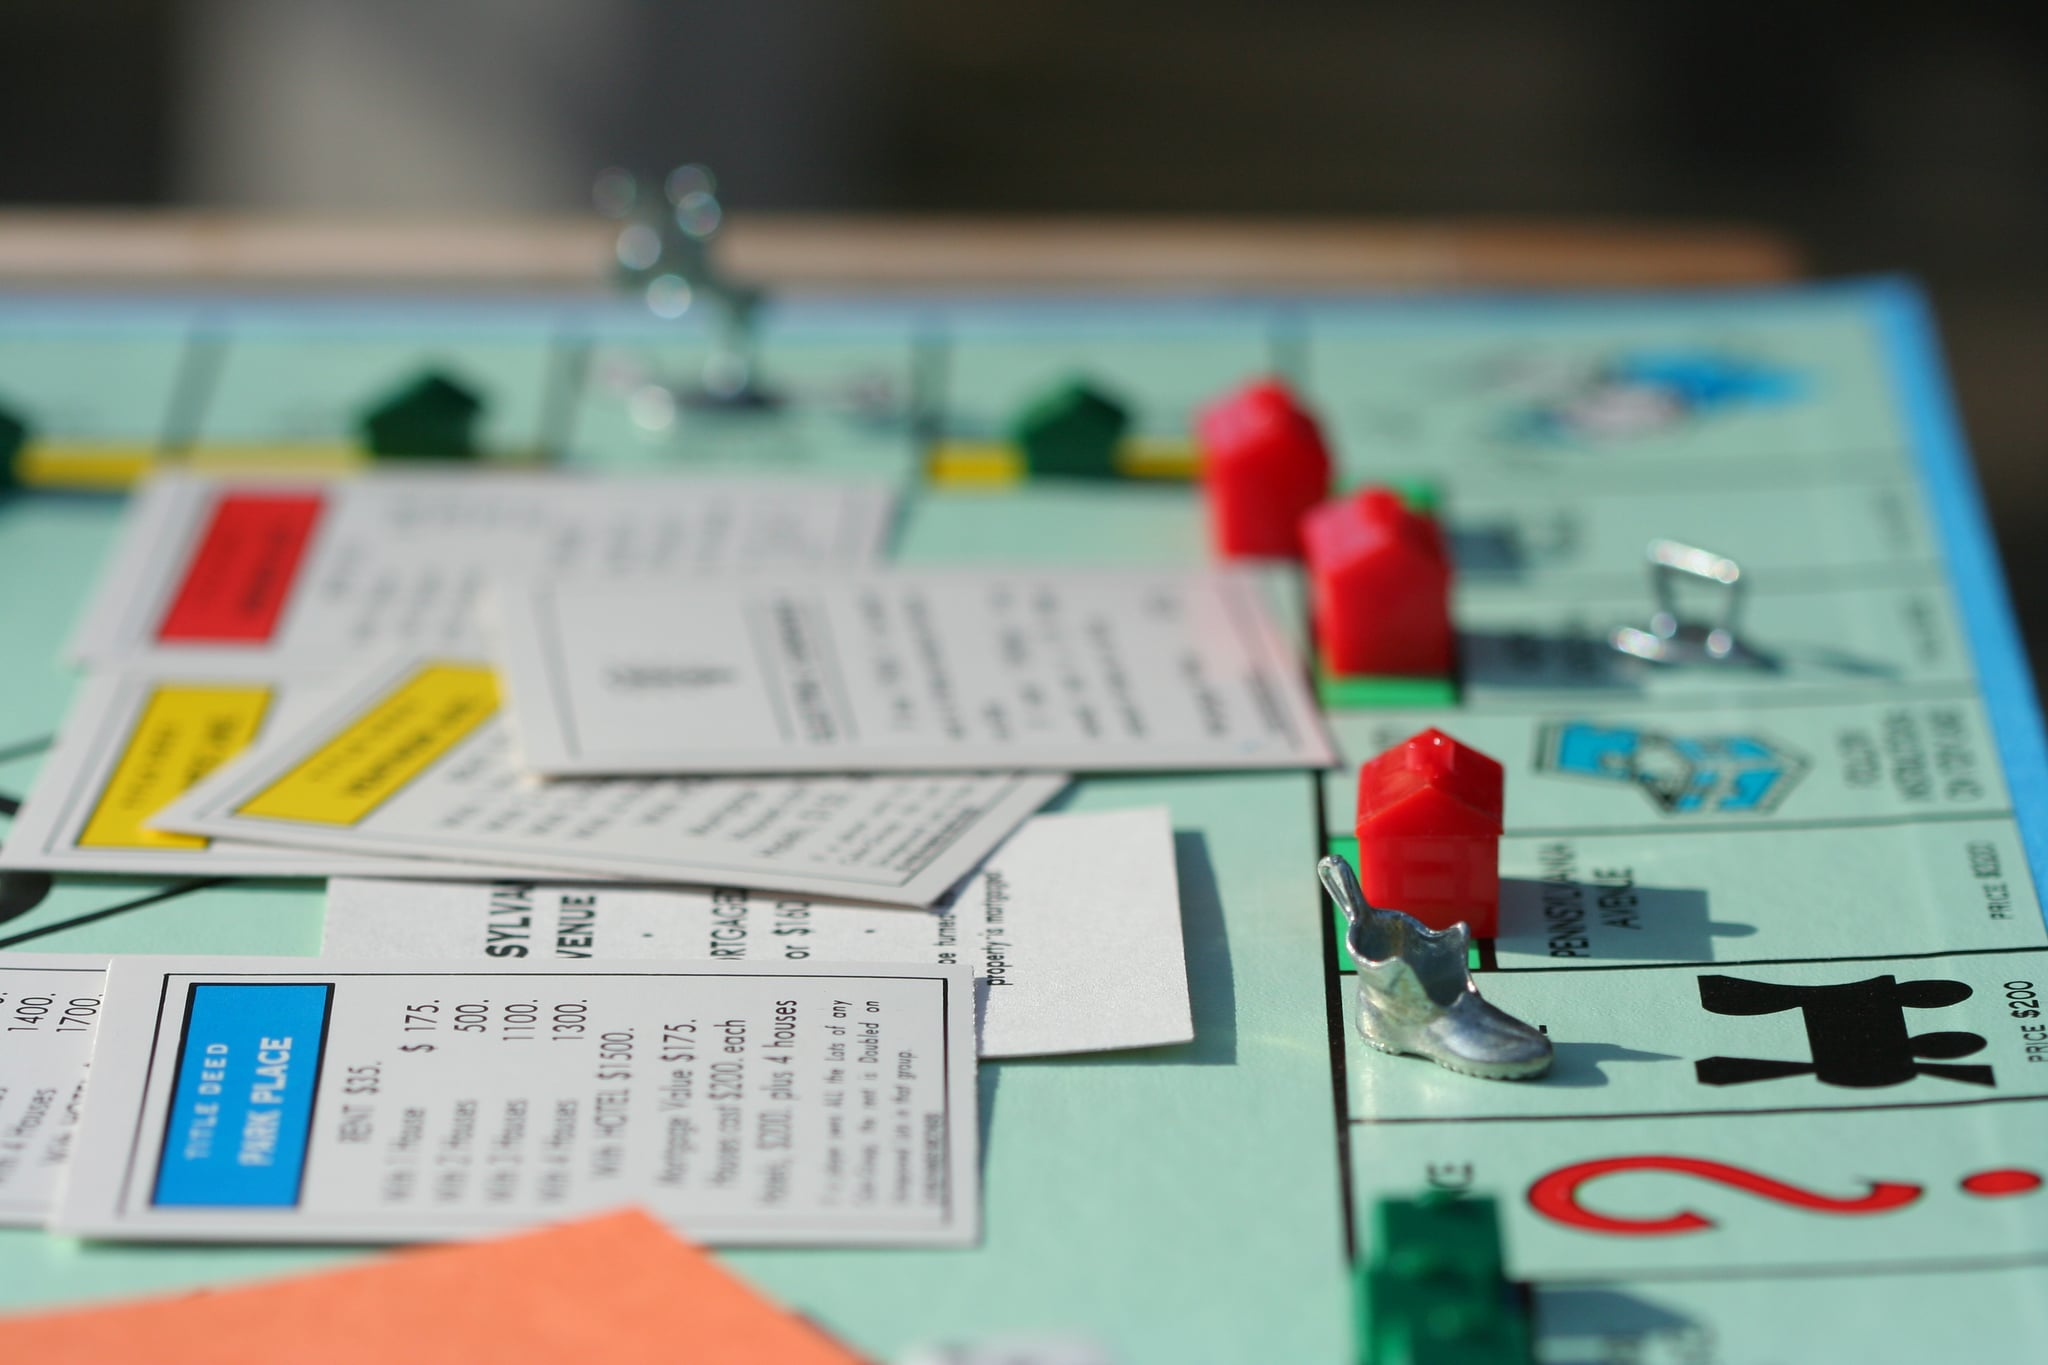 playing monopoly essay Text preview microsoft's journey towards monopoly summary the case evolves around the unethical monopolistic actions taken by microsoft to achieve monopoly.